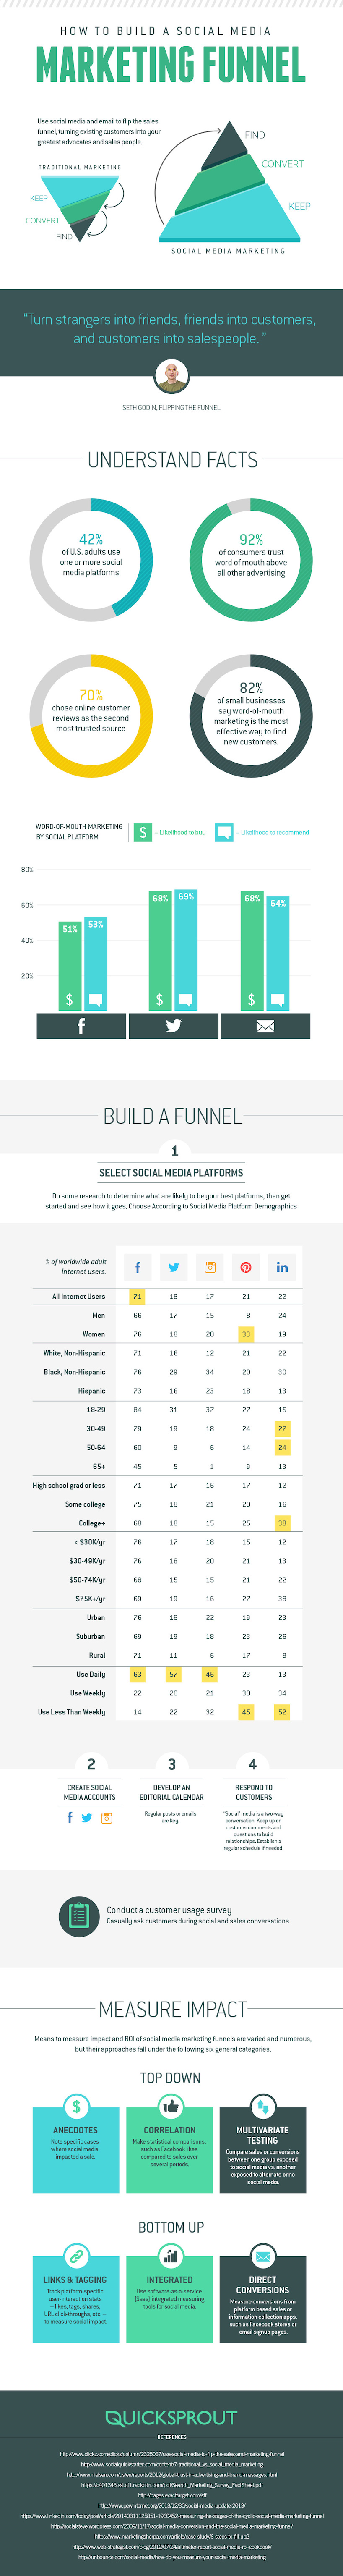 Infographic: How To Build A Social Media Marketing Funnel